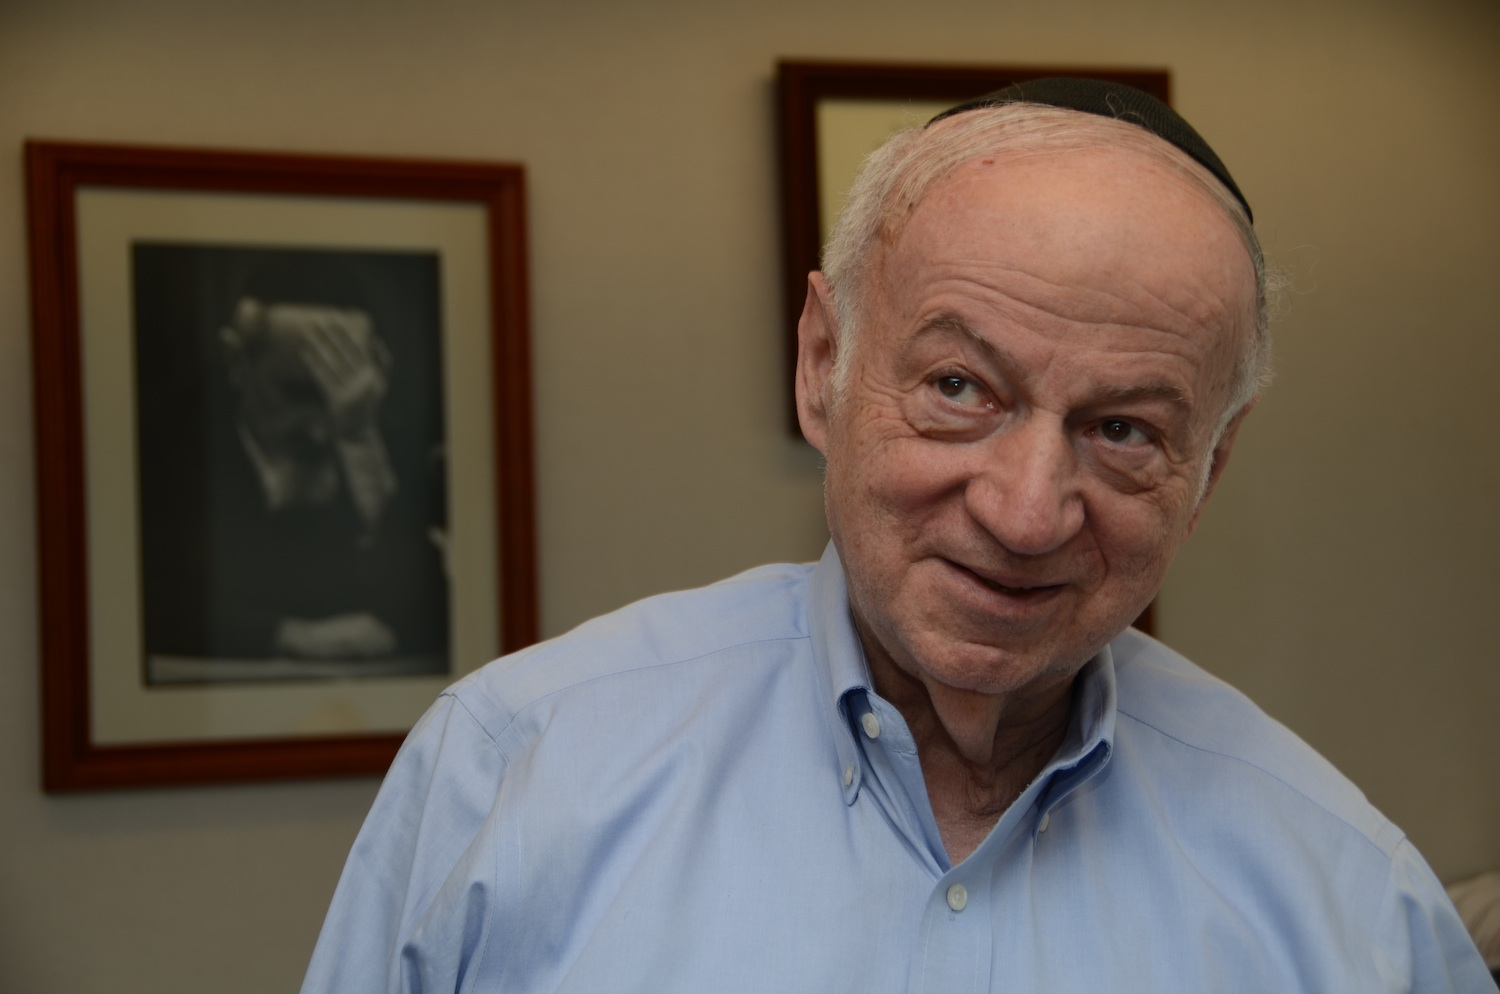 """Click photo to download. Caption:Julius Berman, pictured, chairman of the board of the Claims Conference, said alleged fraud at the Claims Conference amounted to """"phony evidence"""" provided for claims of eligibility for Holocaust compensation. The fraudlasted for about a decade-and-a-half and allegedly deprived Holocaust survivors of more than $57 million, according to theUnited States Attorney for the Southern District of New York. Credit: Maxine Dovere.                 0     0     1     9     52     JNS     1     1     60     14.0                            Normal     0                     false     false     false         EN-US     JA     X-NONE                                                                                                                                                                                                                                                                                                                                                                                                                                                                                                                                                                                                                                                                                                                    /* Style Definitions */ table.MsoNormalTable {mso-style-name:""""Table Normal""""; mso-tstyle-rowband-size:0; mso-tstyle-colband-size:0; mso-style-noshow:yes; mso-style-priority:99; mso-style-parent:""""""""; mso-padding-alt:0in 5.4pt 0in 5.4pt; mso-para-margin:0in; mso-para-margin-bottom:.0001pt; mso-pagination:widow-orphan; font-size:12.0pt; font-family:Cambria; mso-ascii-font-family:Cambria; mso-ascii-theme-font:minor-latin; mso-hansi-font-family:Cambria; mso-hansi-theme-font:minor-latin;}                              0     0     1     16     92     JNS     1     1     107     14.0                            Normal     0                     false     fals"""